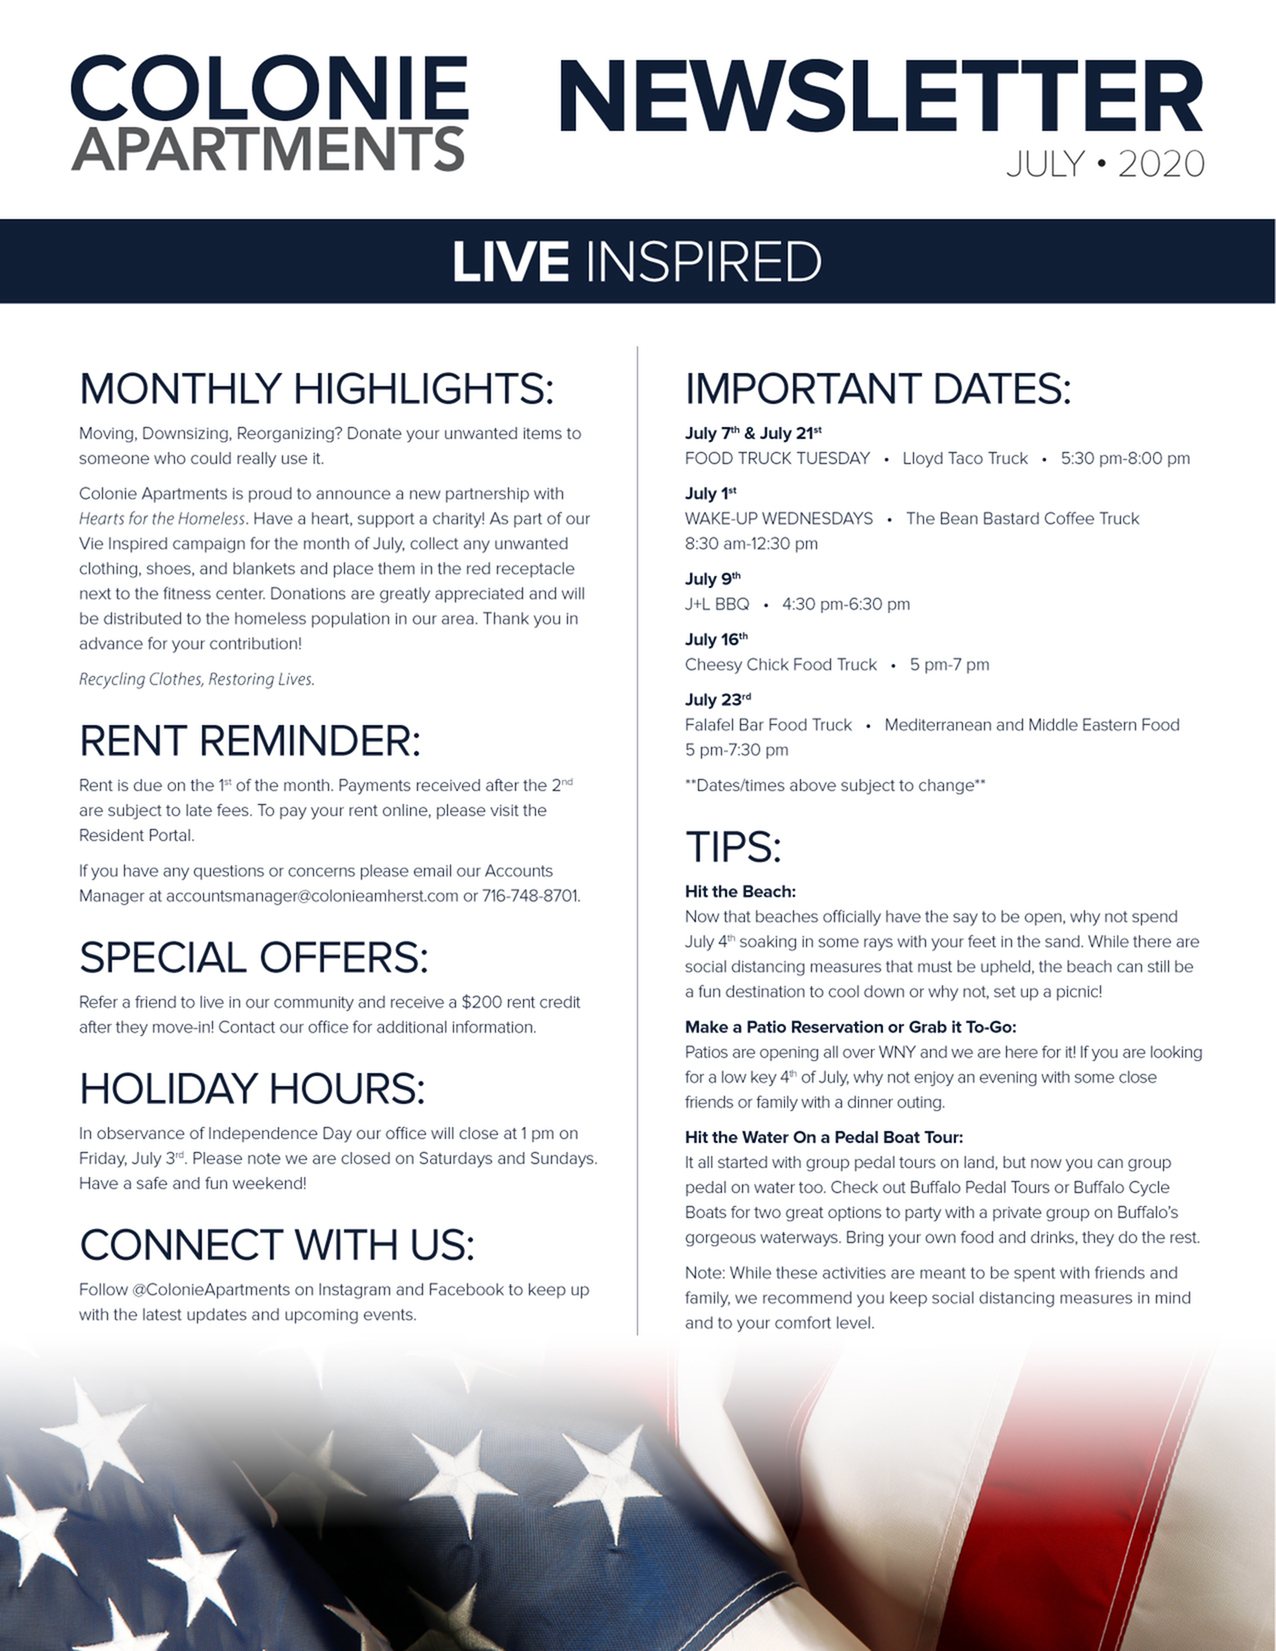 Monthly Updates & Upcoming Events (July)-image